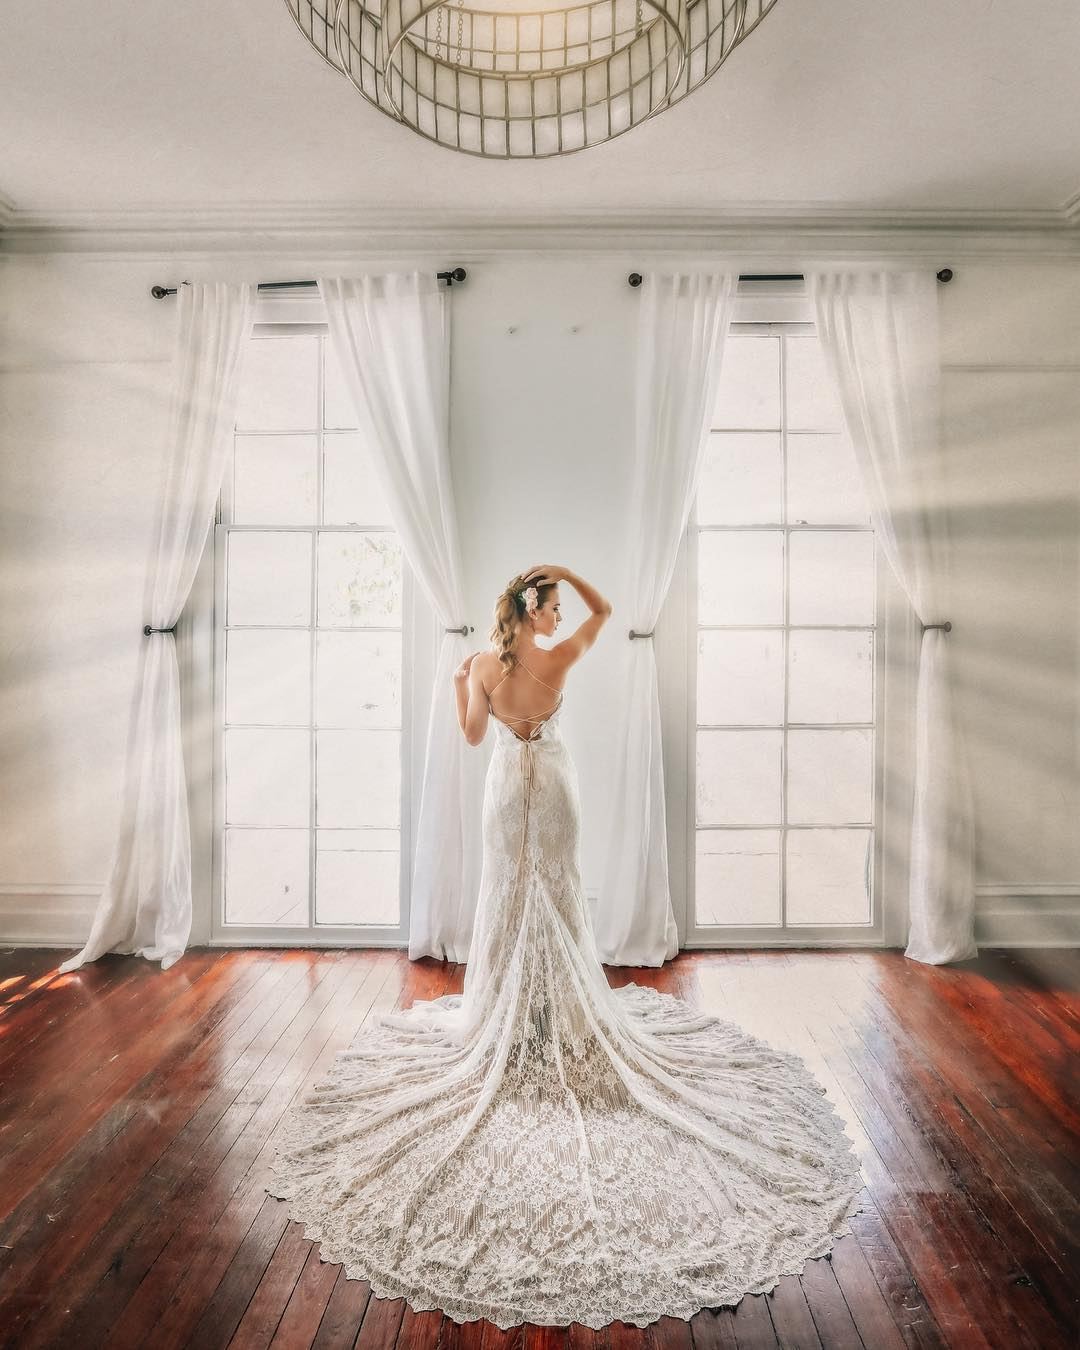 A bride posing in front of two windows flaunting the train of her wedding dress